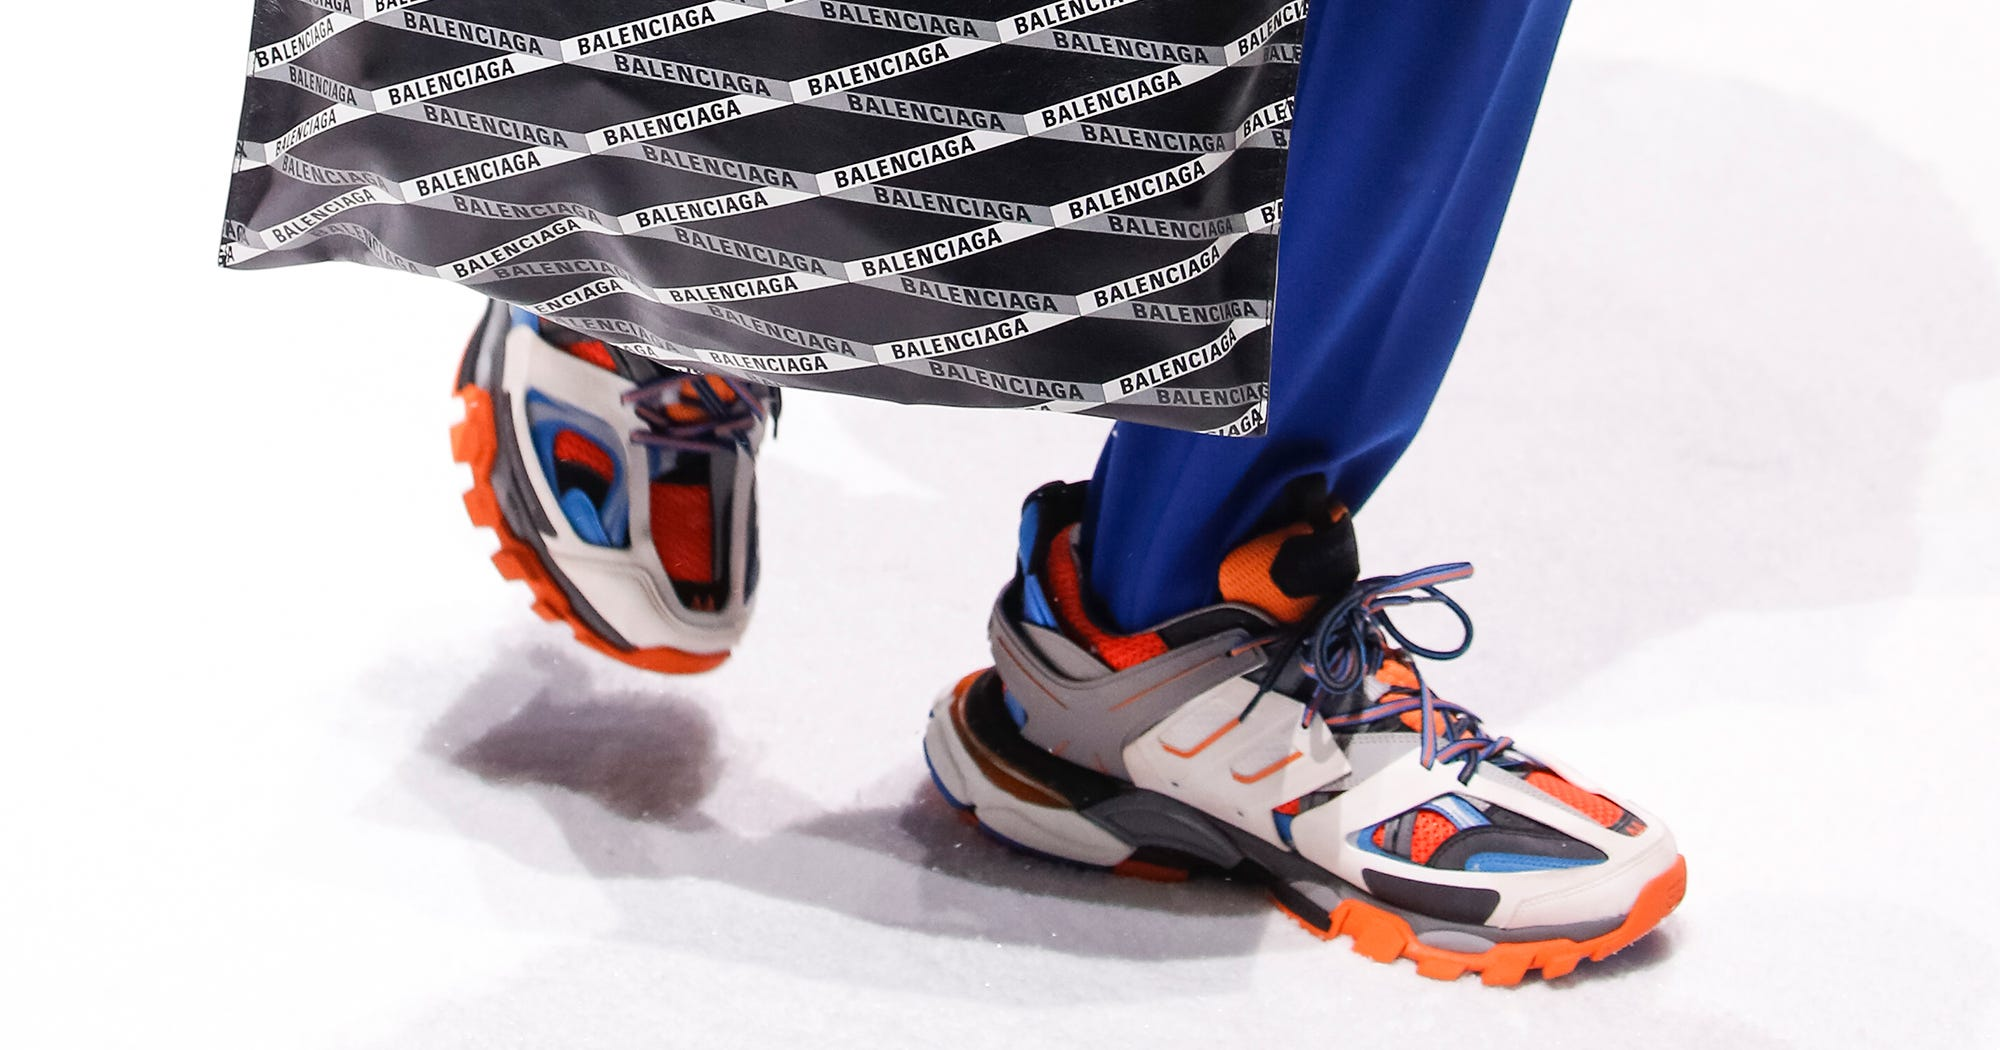 Balenciaga Newest Sneaker Is A Chic Cute Track Shoe af0b2ac2b